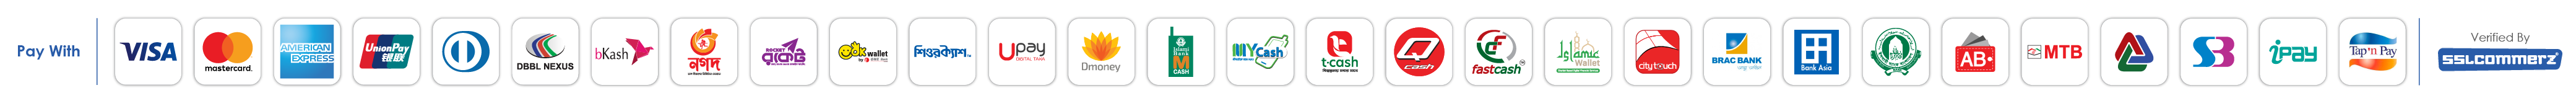 available payment methods